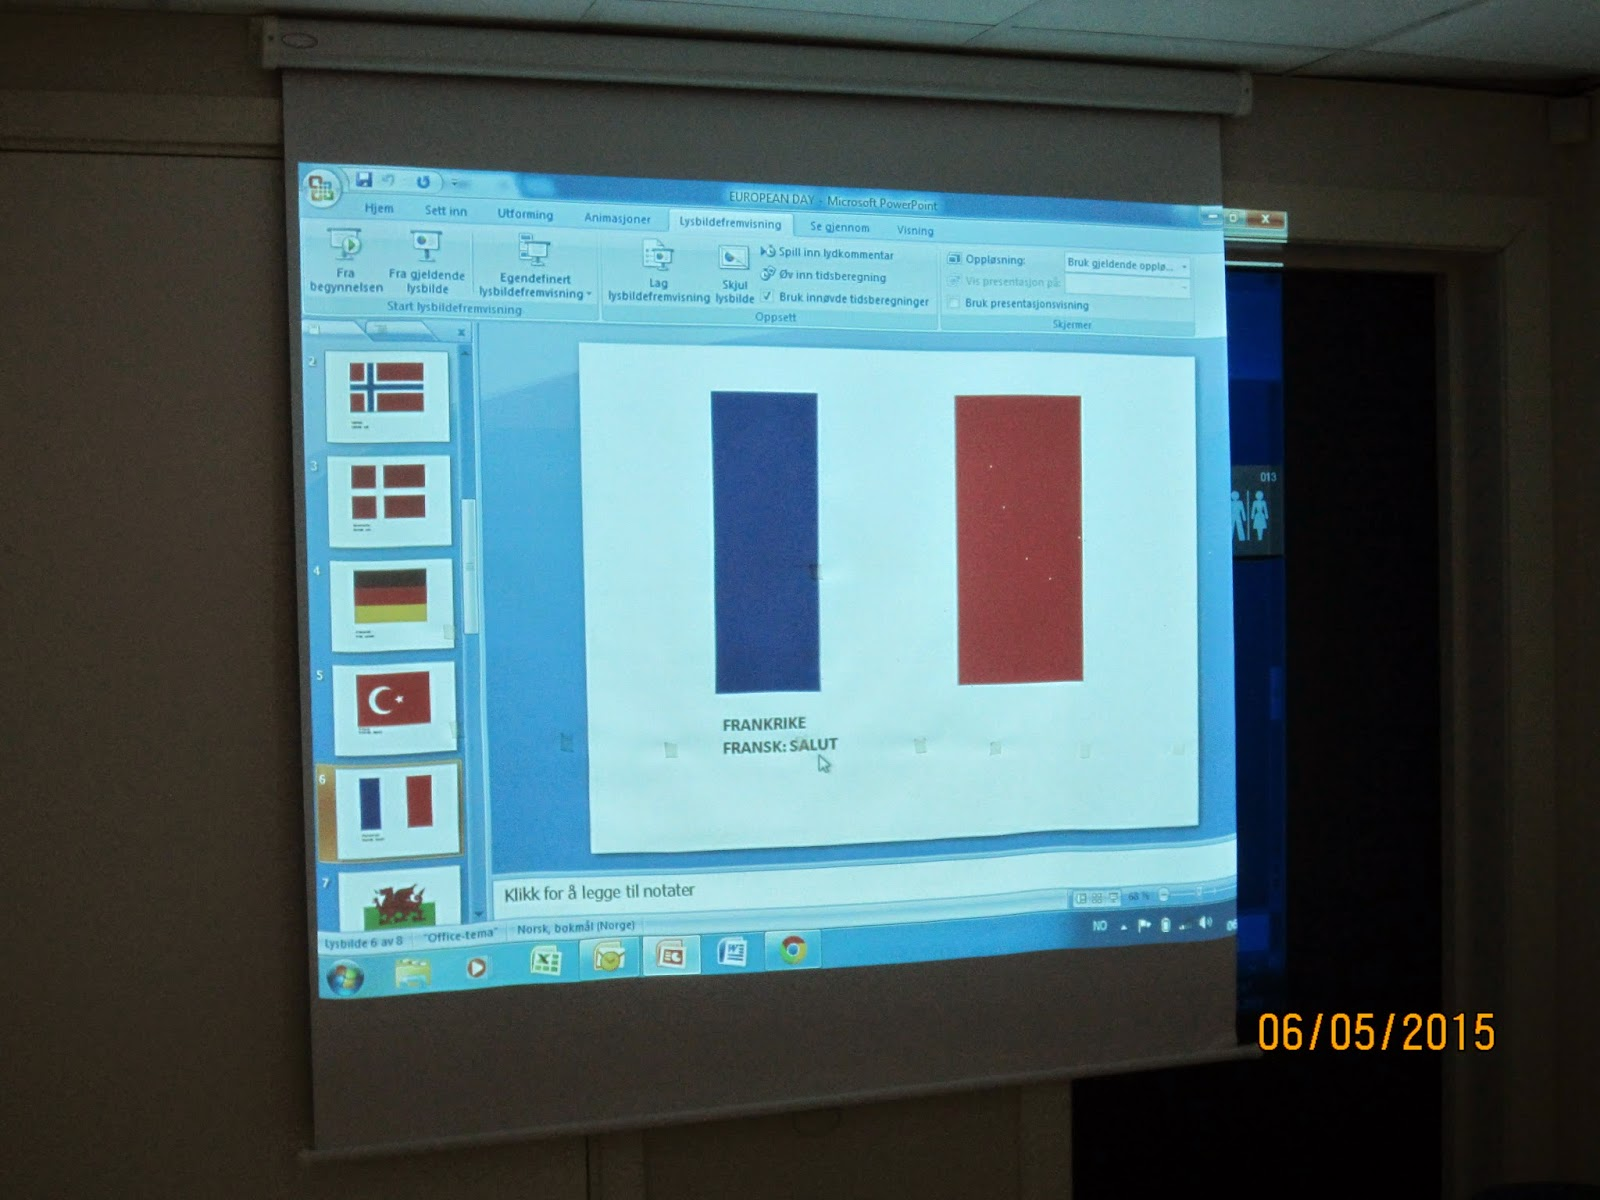 skjule notater i powerpoint